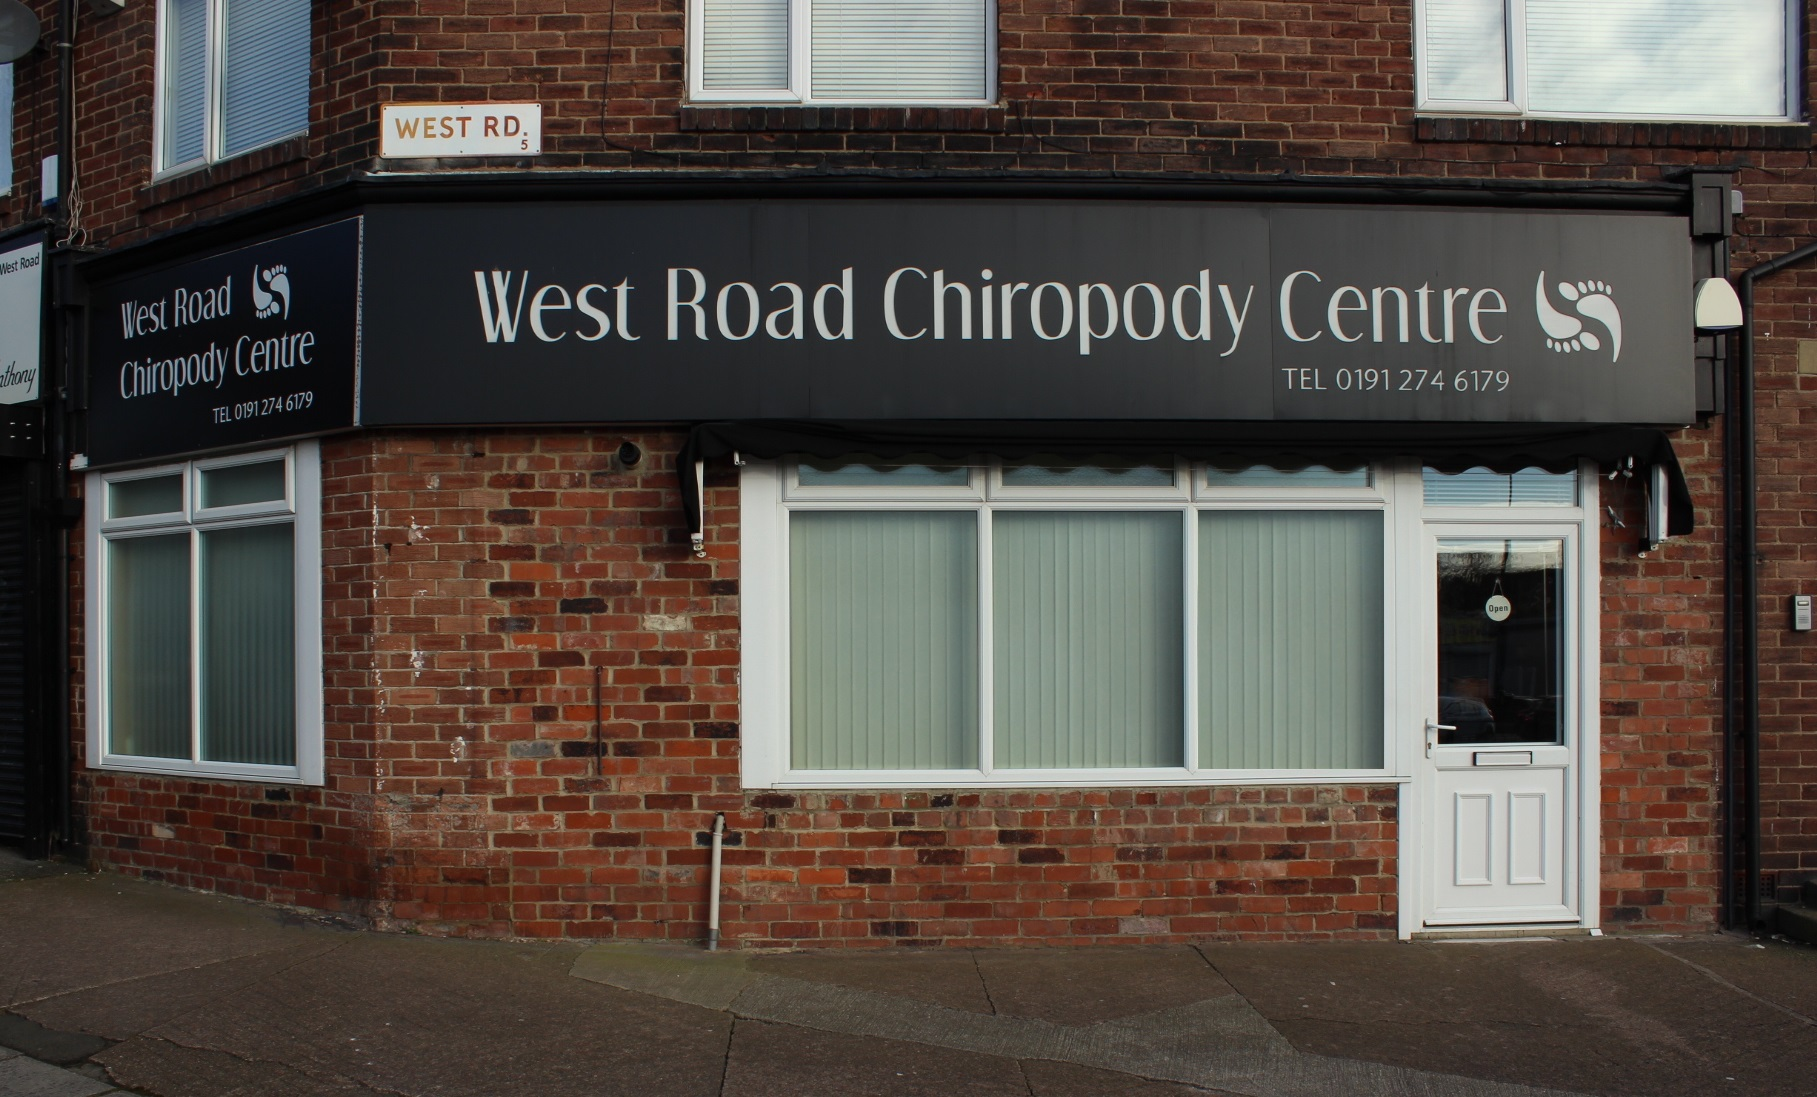 West Road Chiropody Centre Store Front